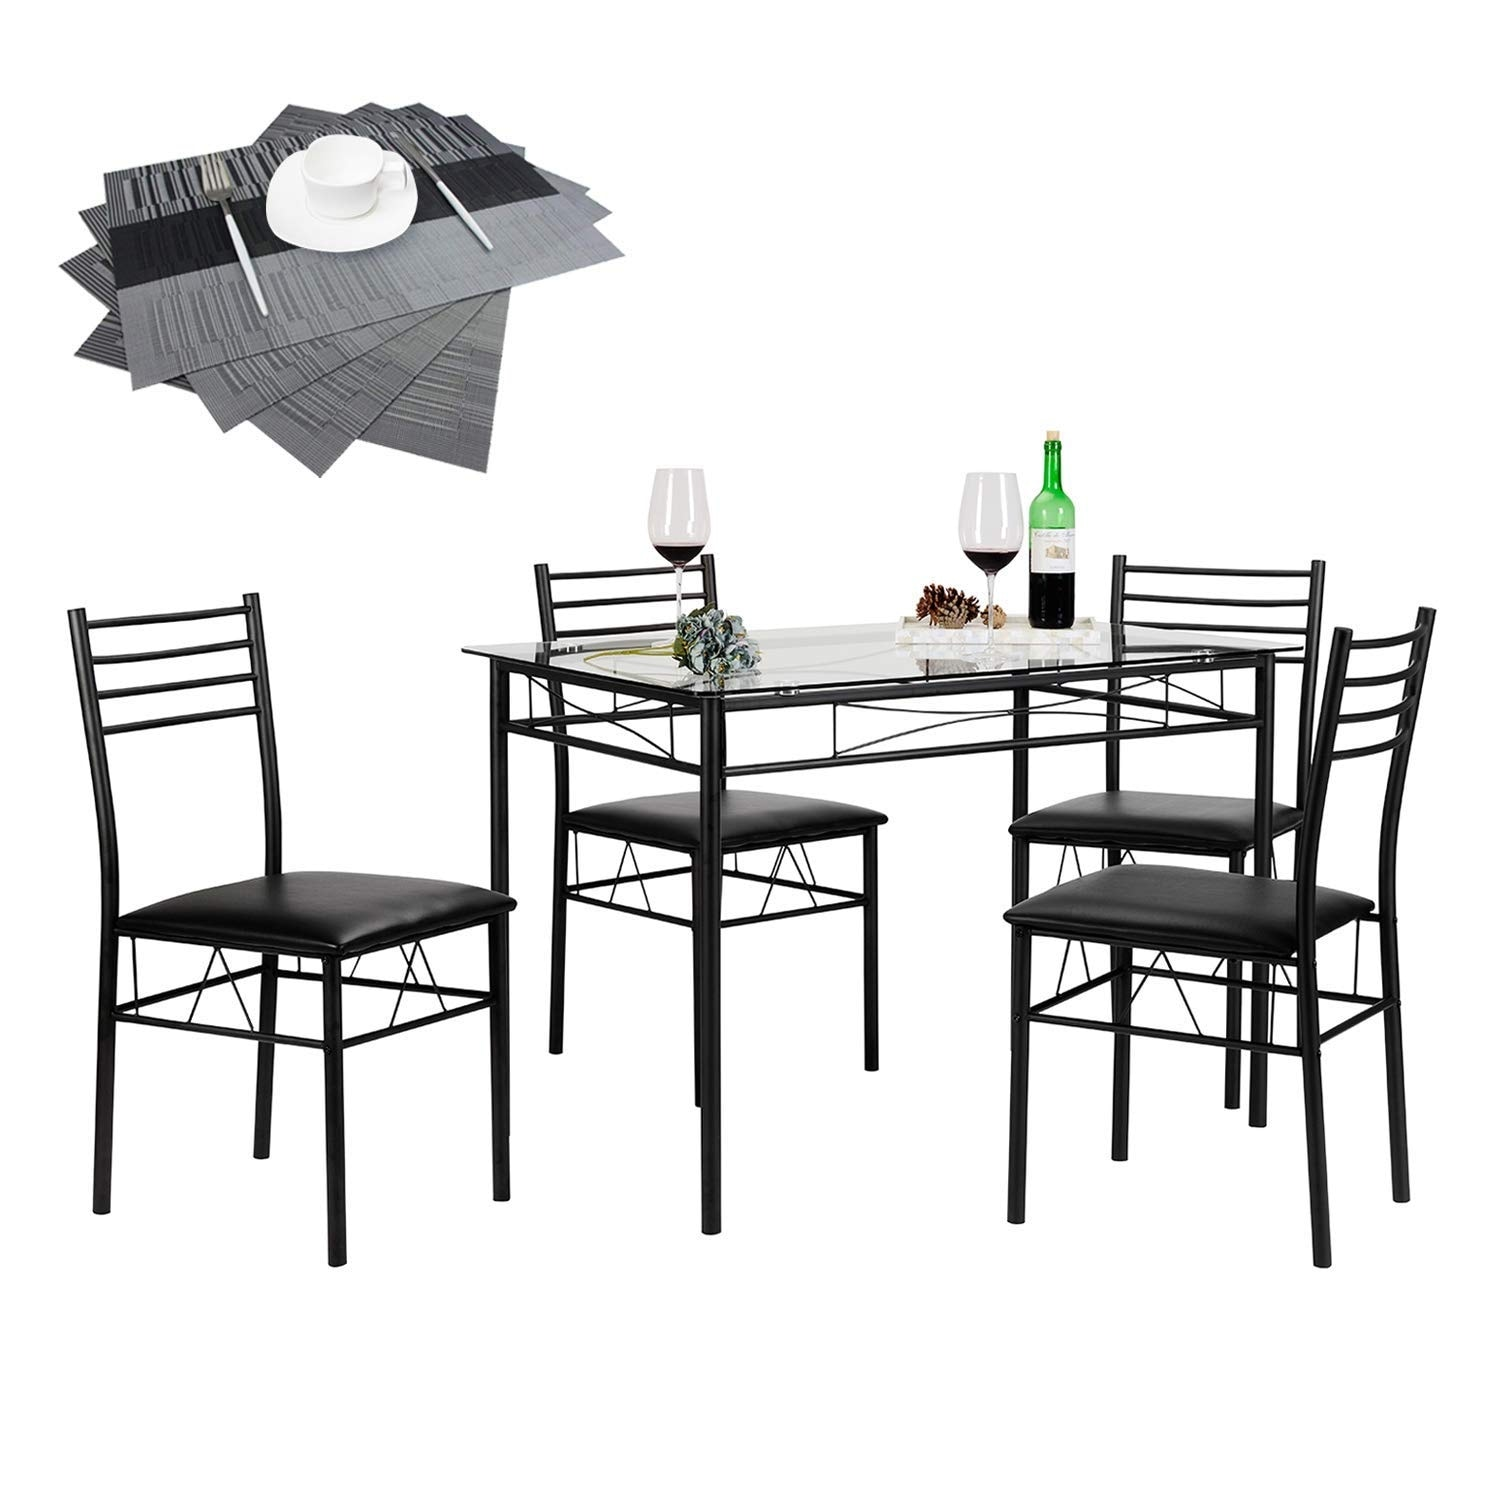 Vecelo Dining Table Sets Glass Table With 4 Chairs Metal Kitchen Room Furniture 5 Pcssilver Only